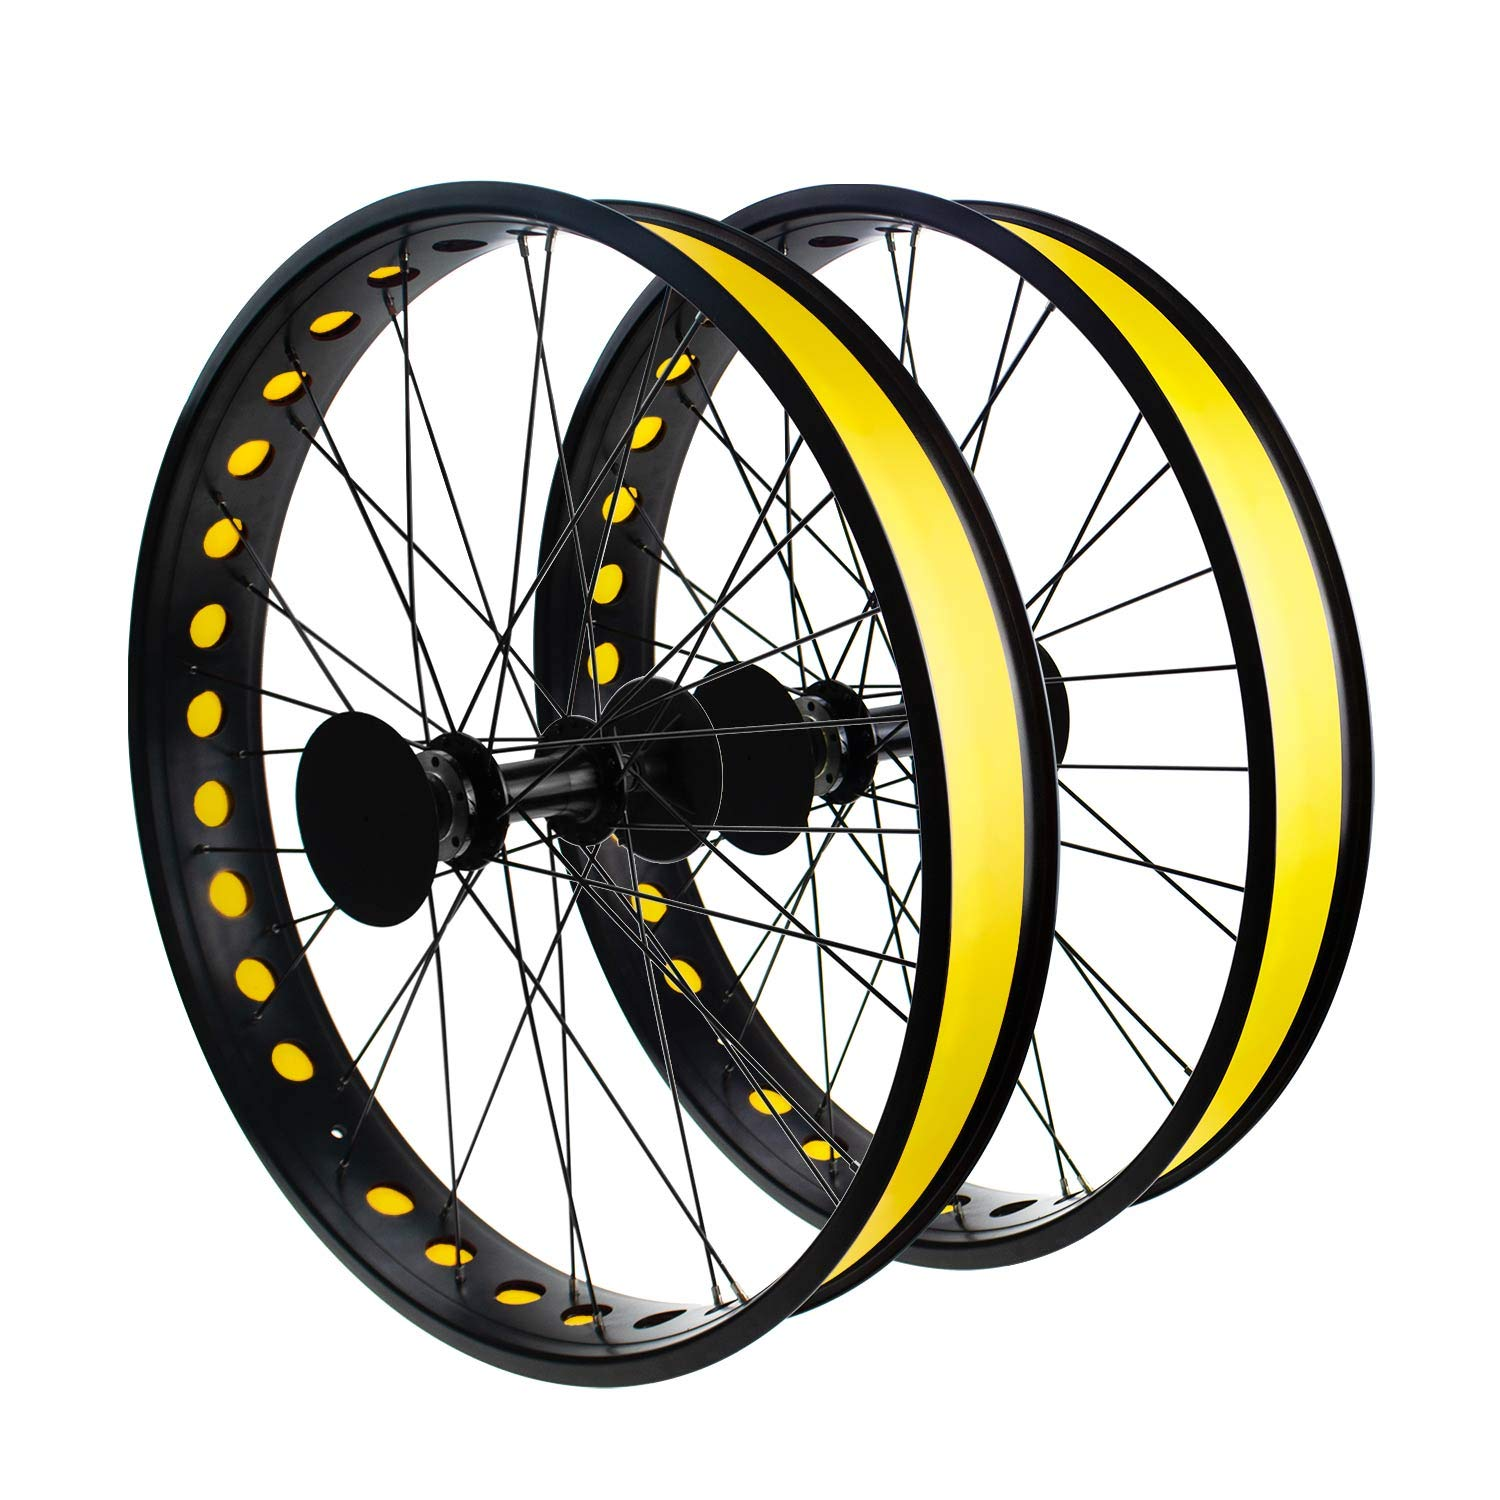 Addmotor Rim Strip Rim Tape 26 inch Fat tire Liner PVC Inner Tube Cushion Protector Anti Puncture for Bikes 4PCS